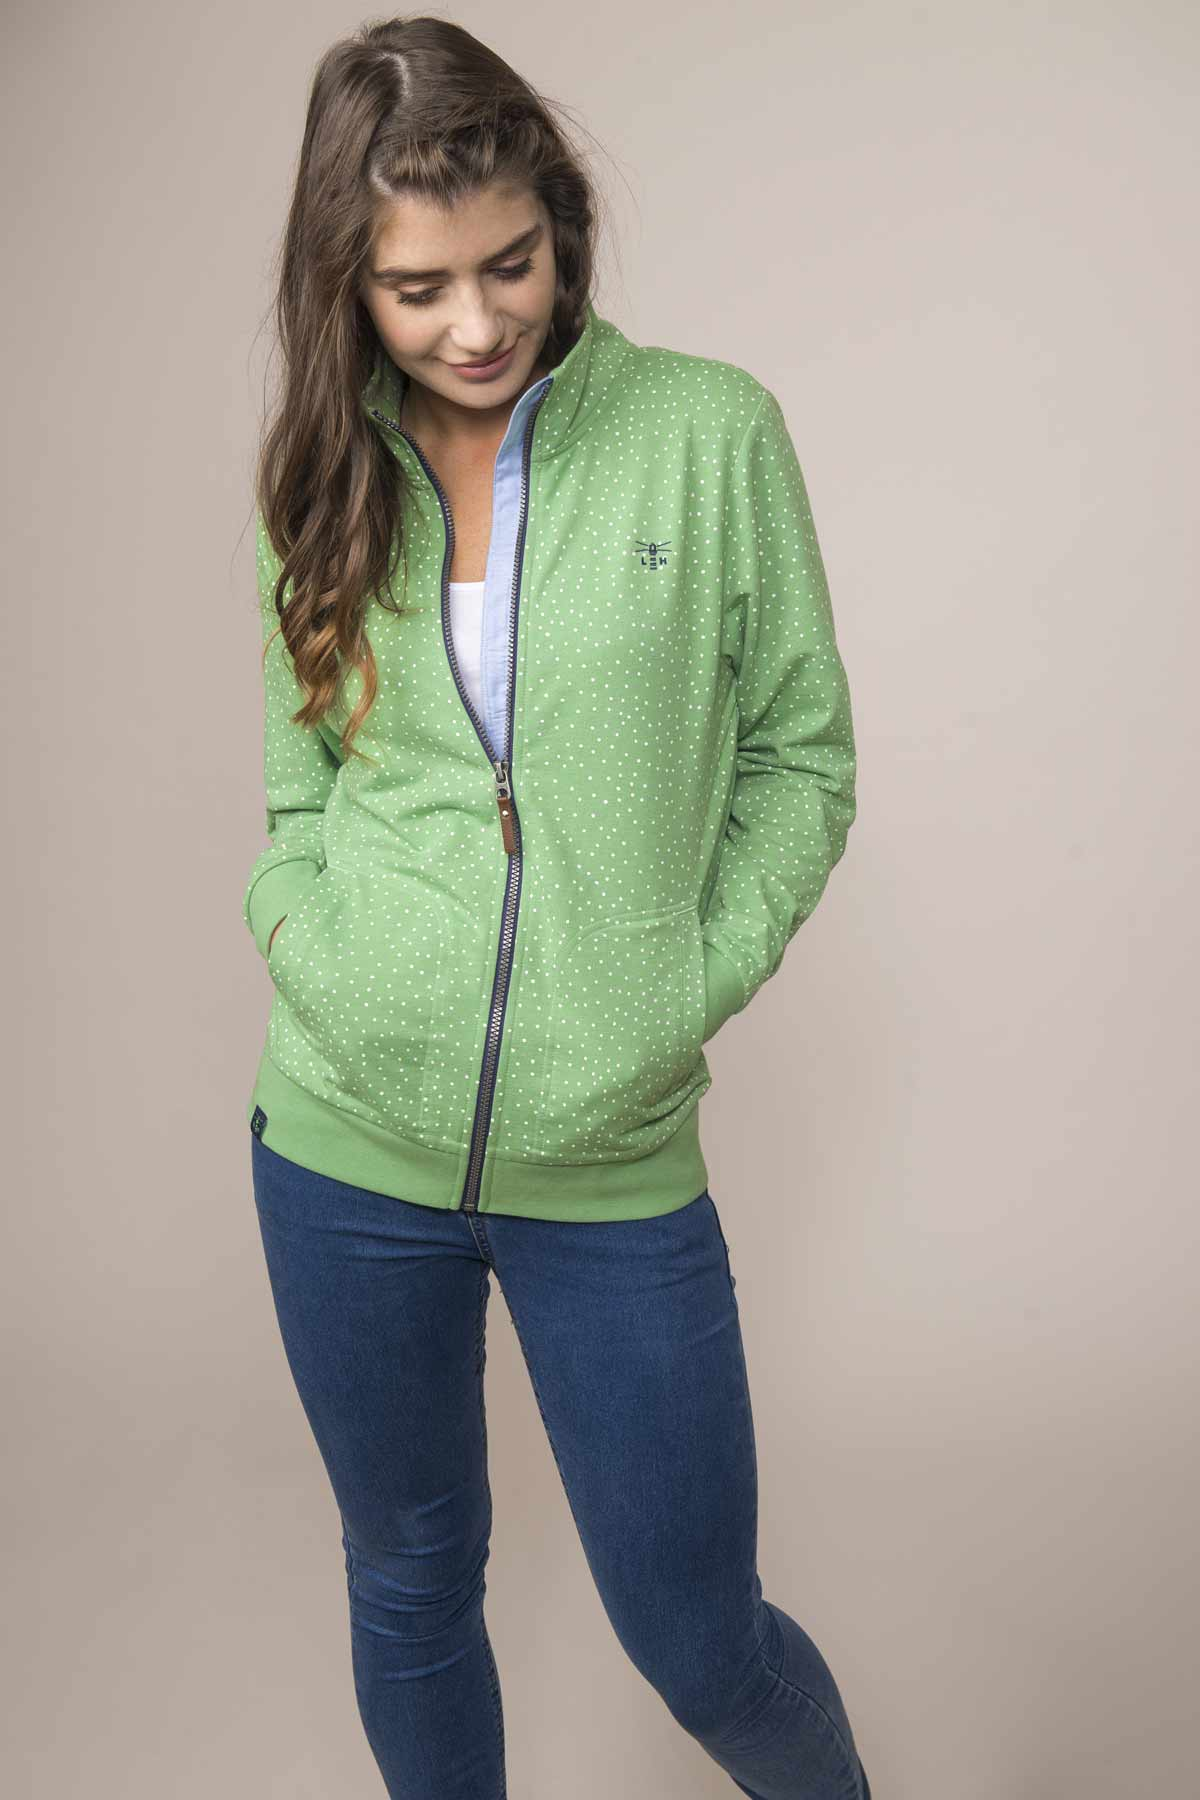 Lighthouse Tyrella Womens Sweatshirt Pistachio Dot